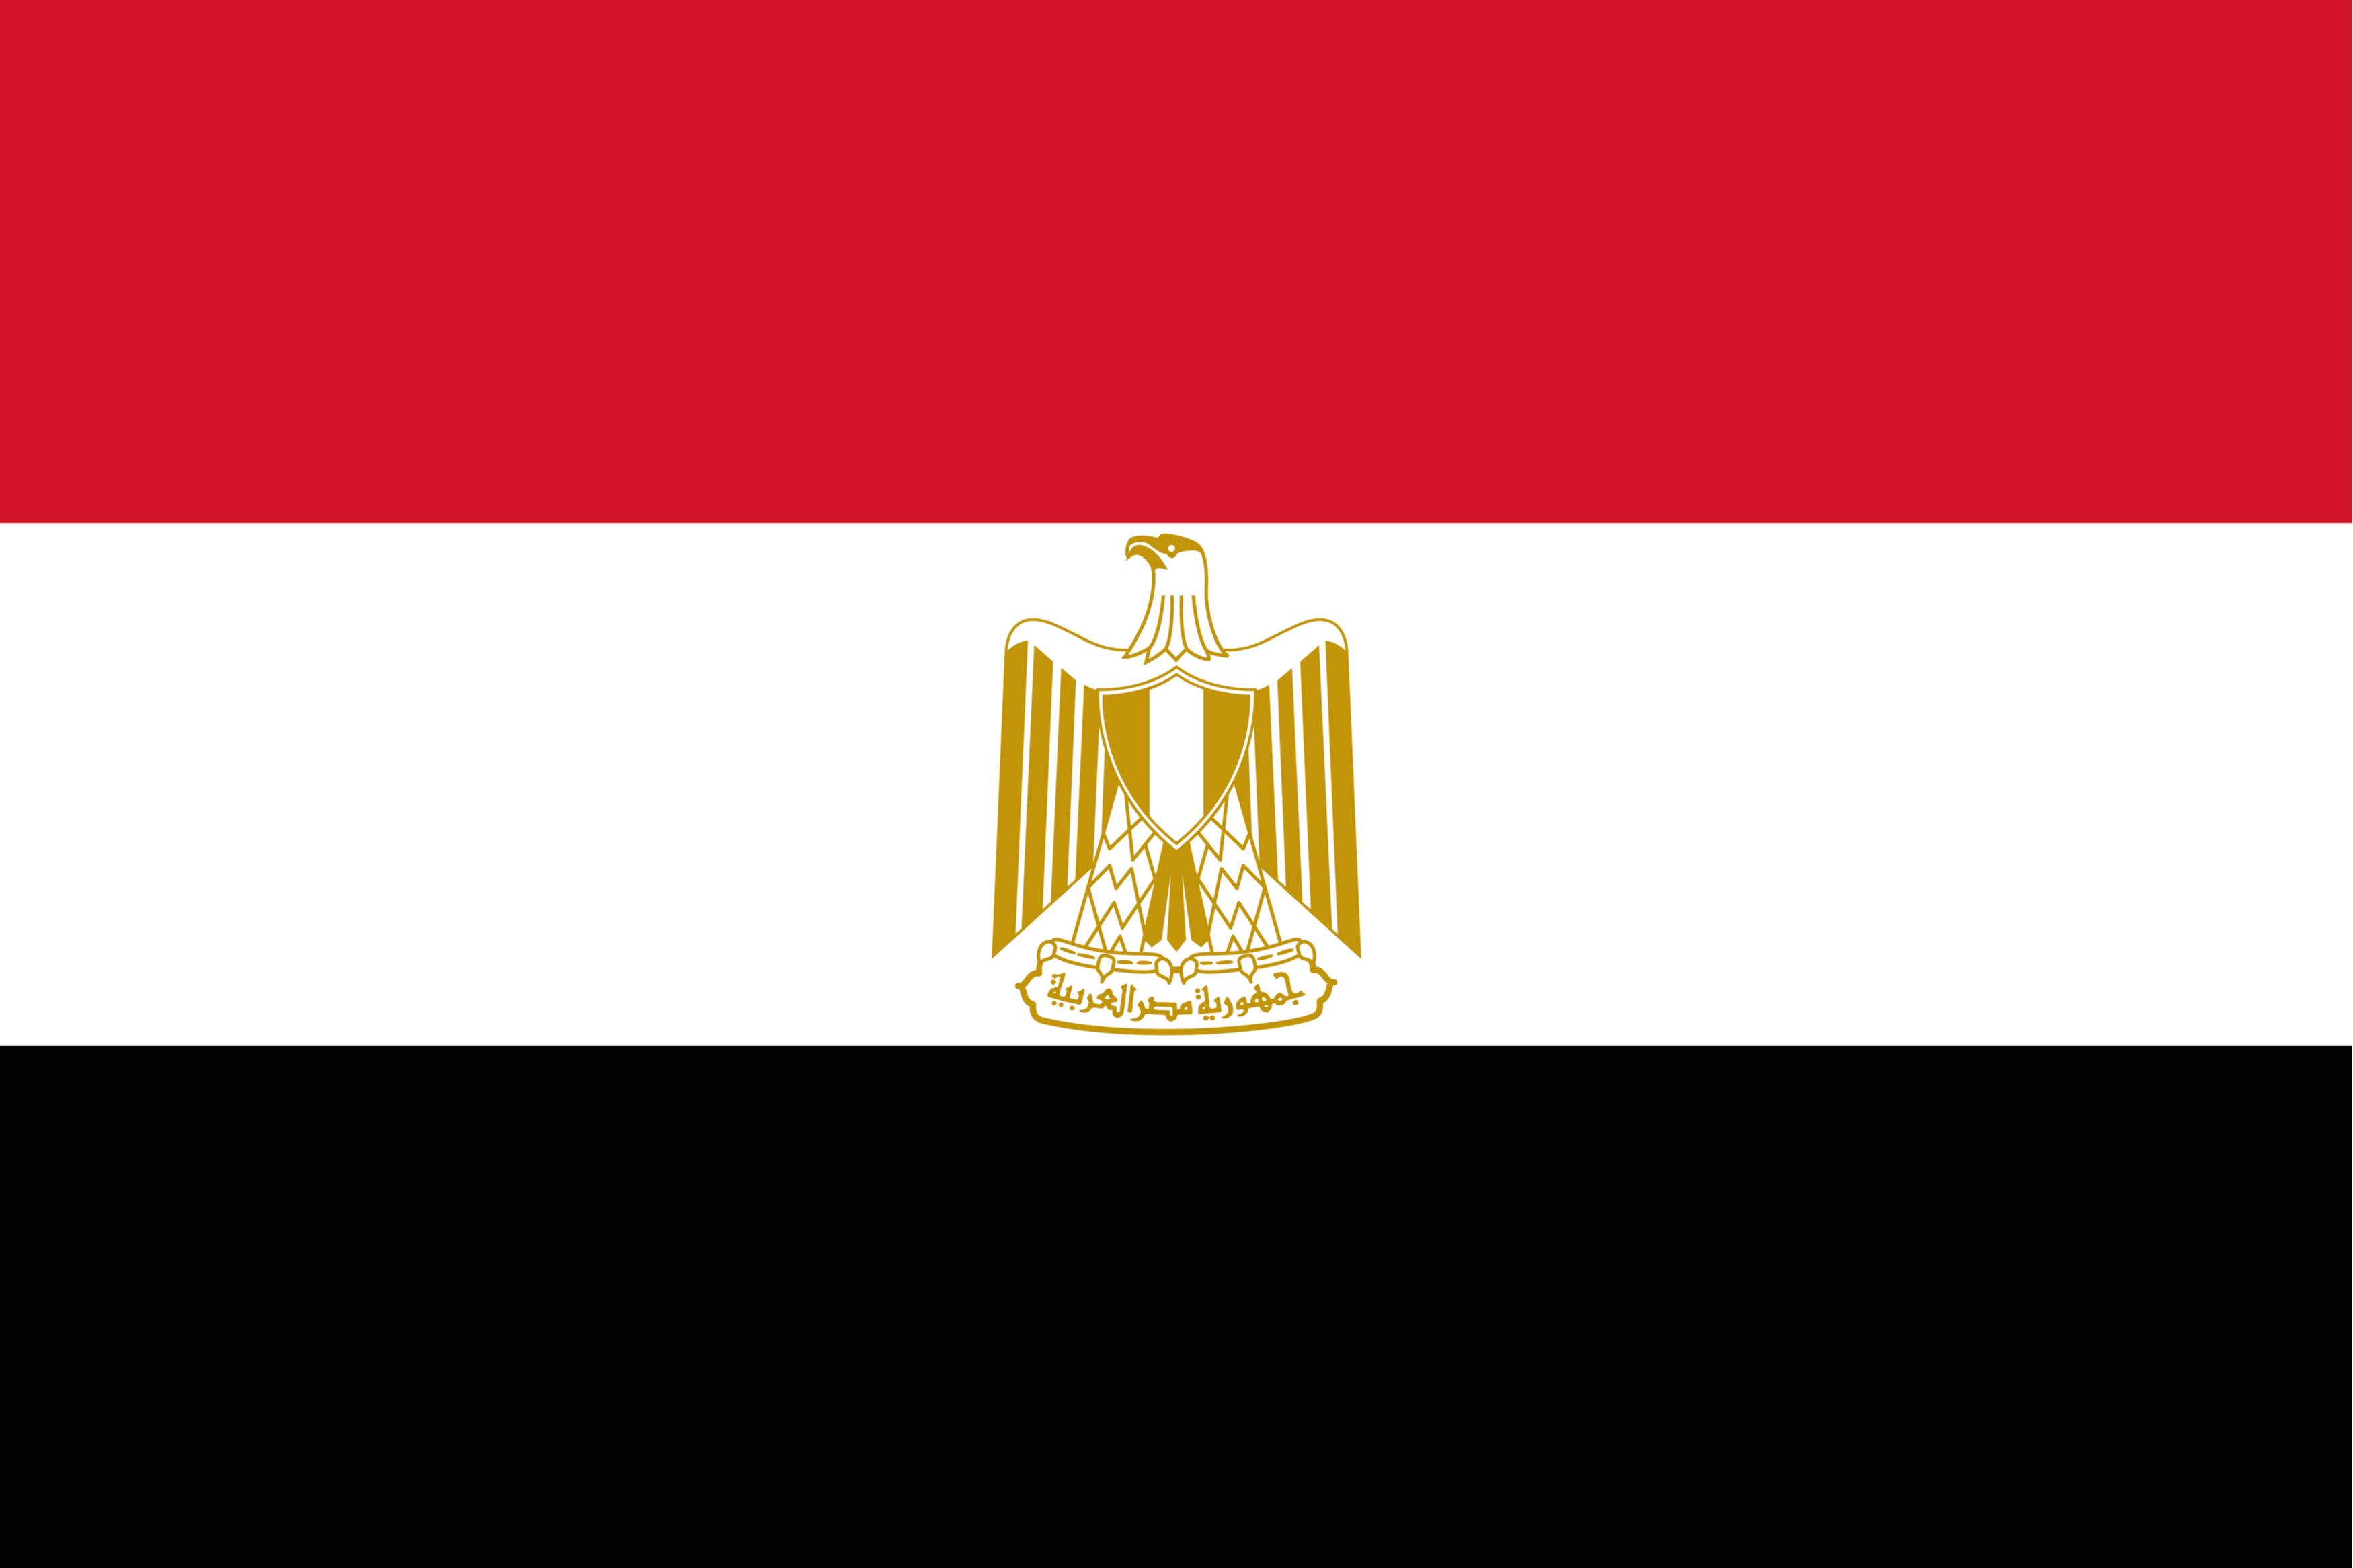 The flag of Egypt features a golden Eagle of Saladin, Egypt's national emblem.